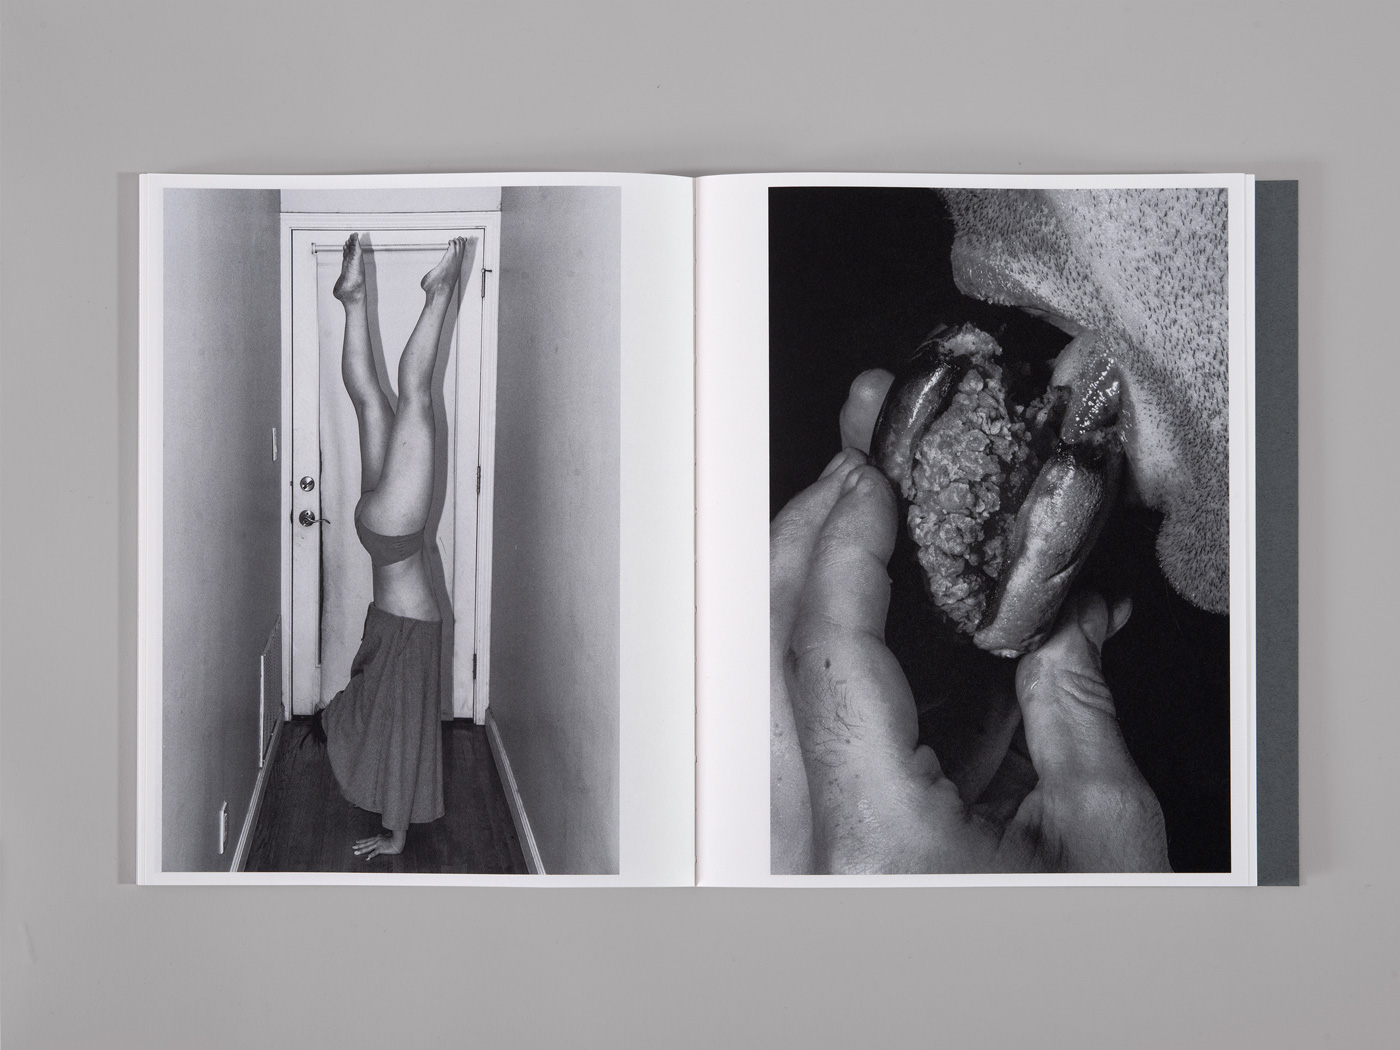 13 collide24 samepaper - The book Still Life, published by Same Paper and designed by Han Gao, invites thirteen photographers to reflect on the medium in times of the pandemic